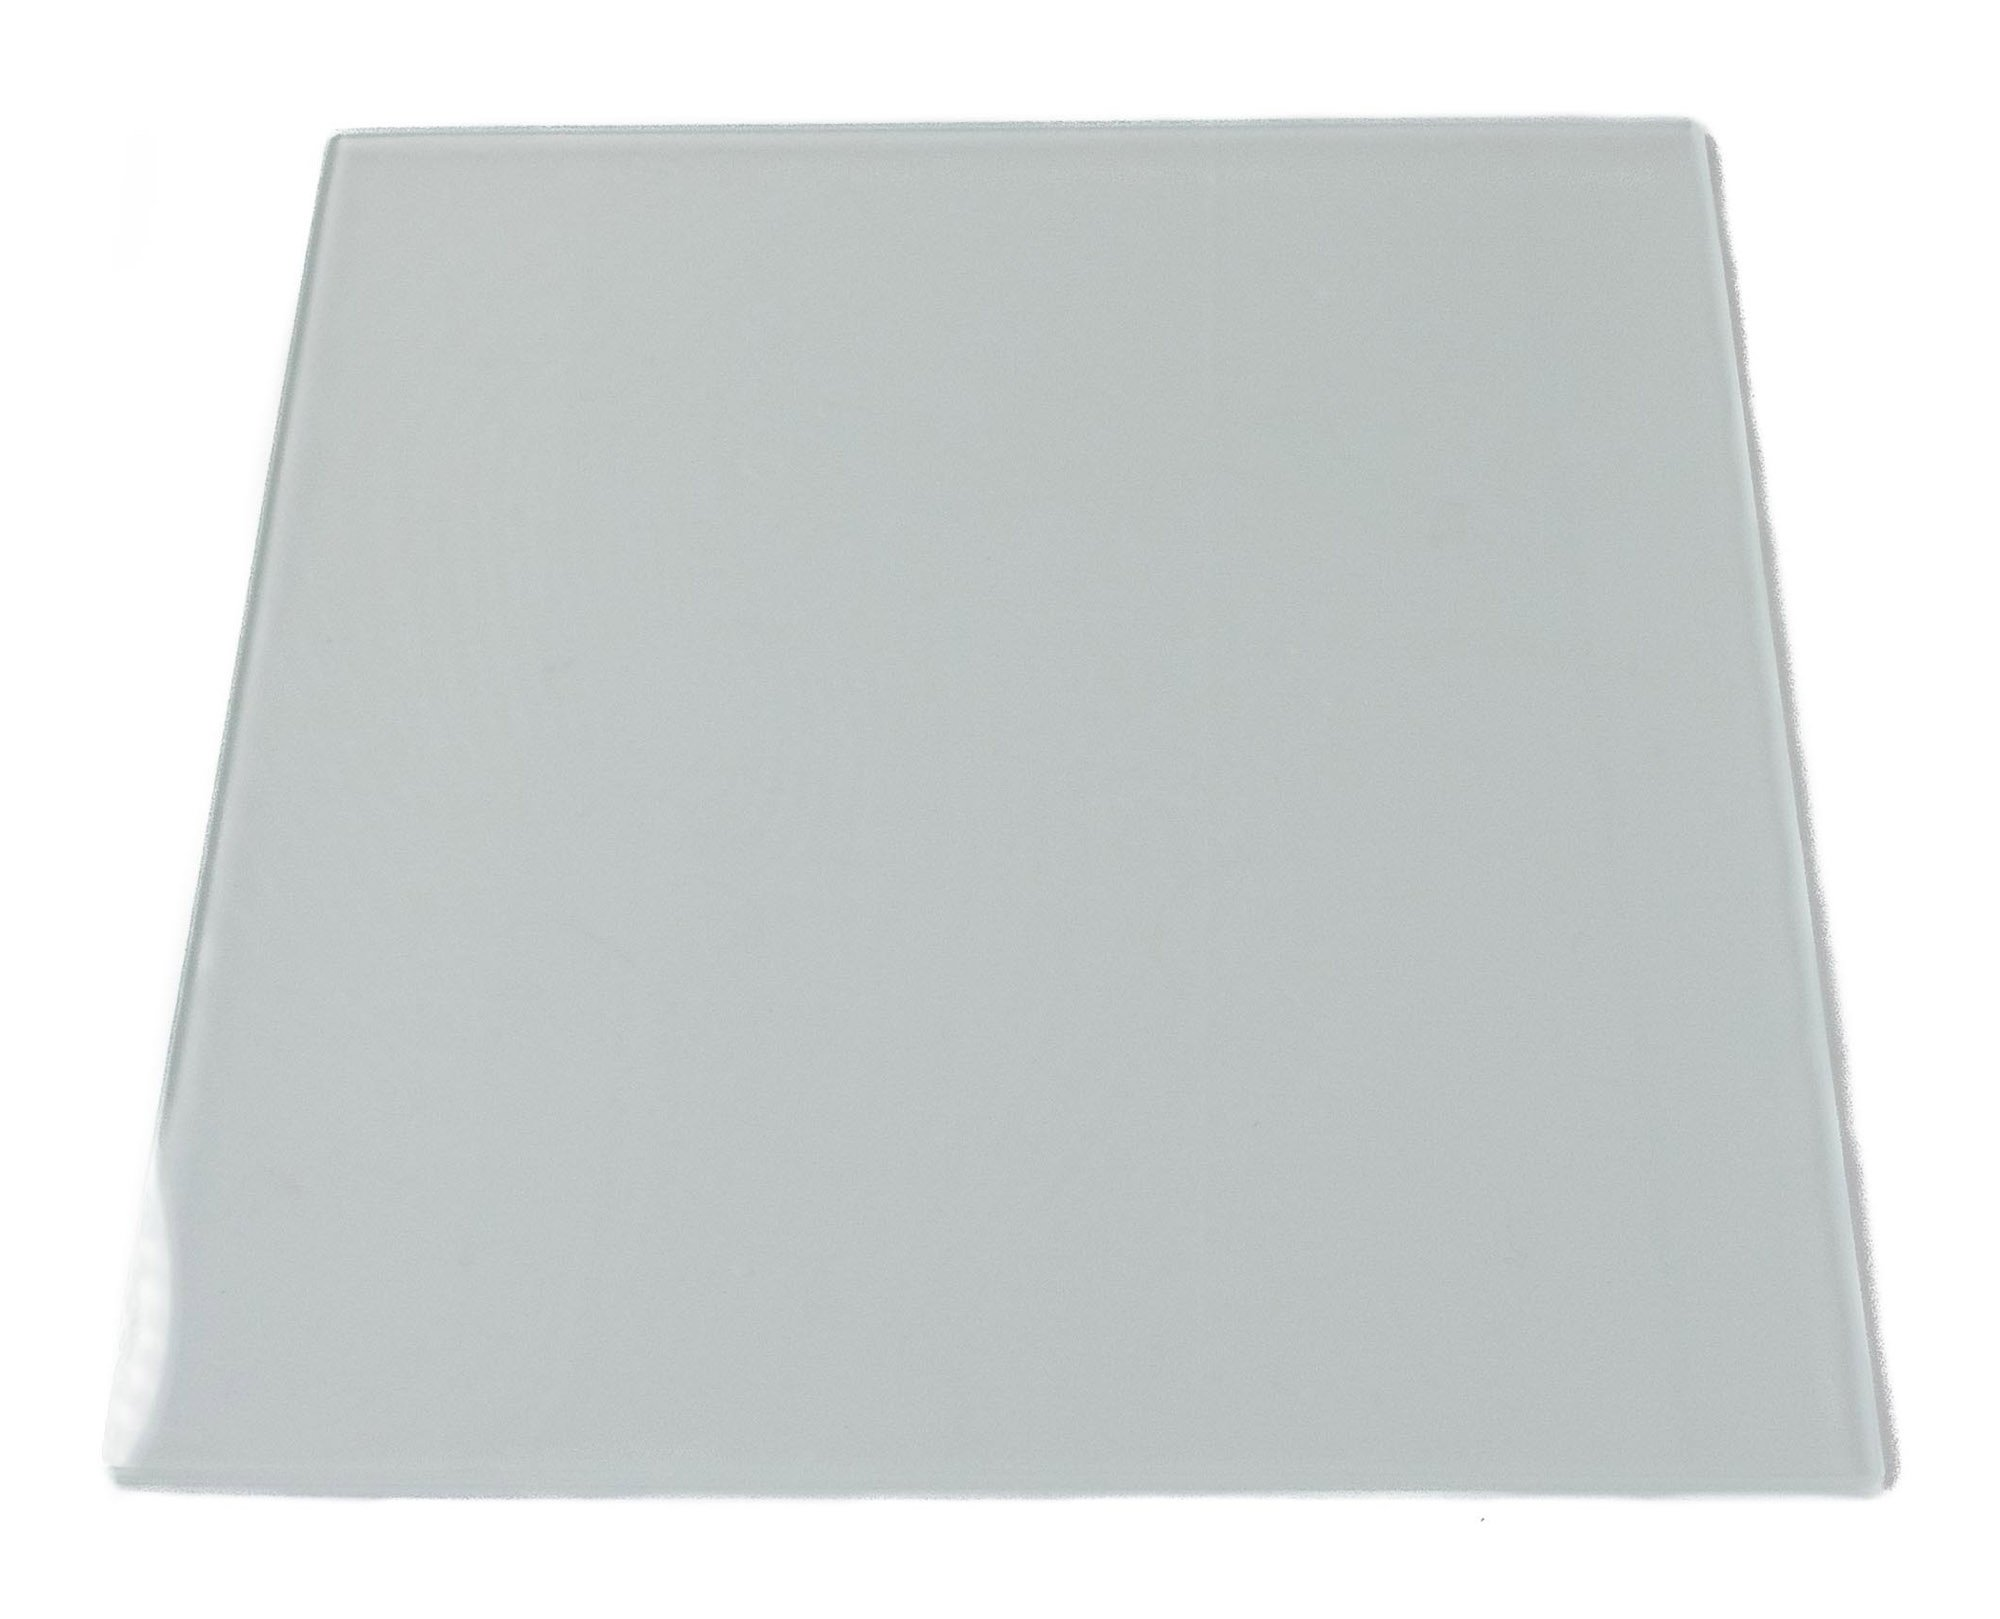 Frosted Inner Glass Plate for IBI Vertical Electrophoresis System IB62000